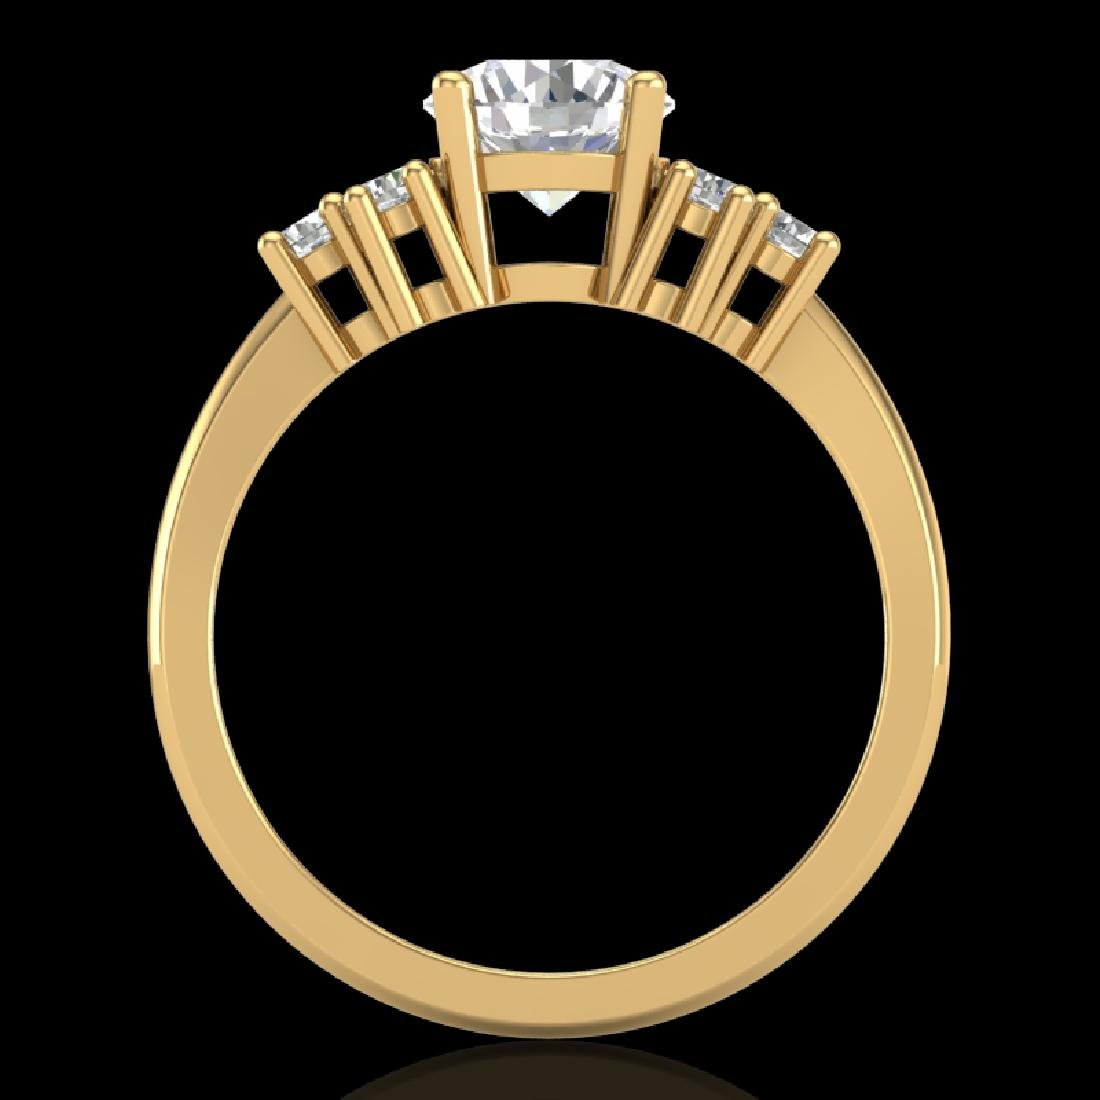 1.5 CTW VS/SI Diamond Solitaire Ring 18K Yellow Gold - 2